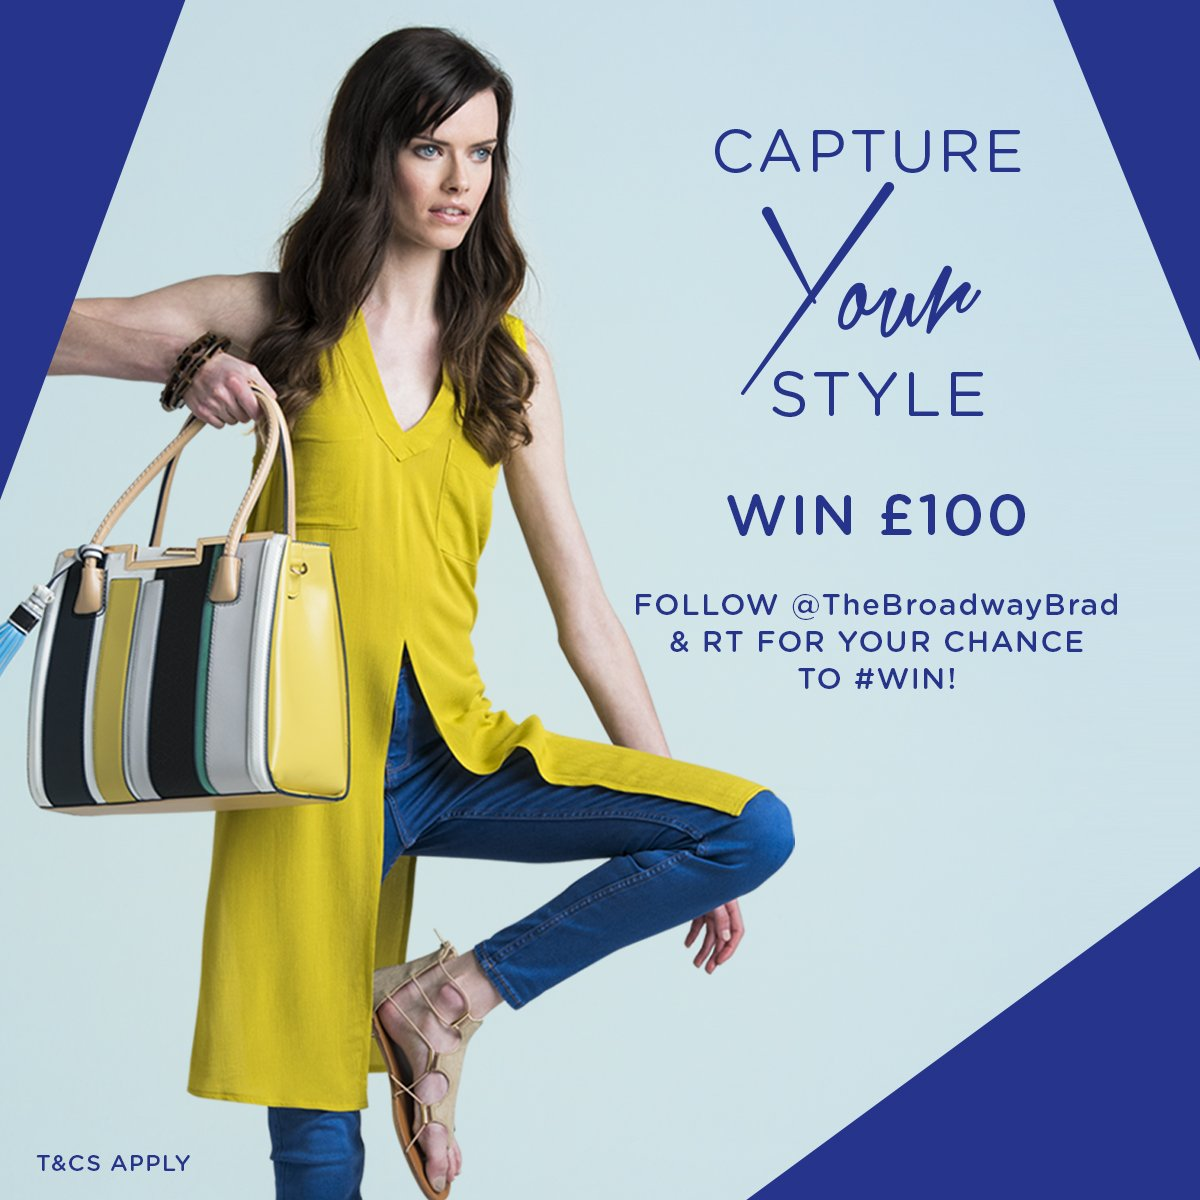 Follow @TheBroadwayBrad & RT to #win! T&Cs:https://t.co/fopKkDTonx #competition #captureyourstyle https://t.co/EQu3mL5GpM